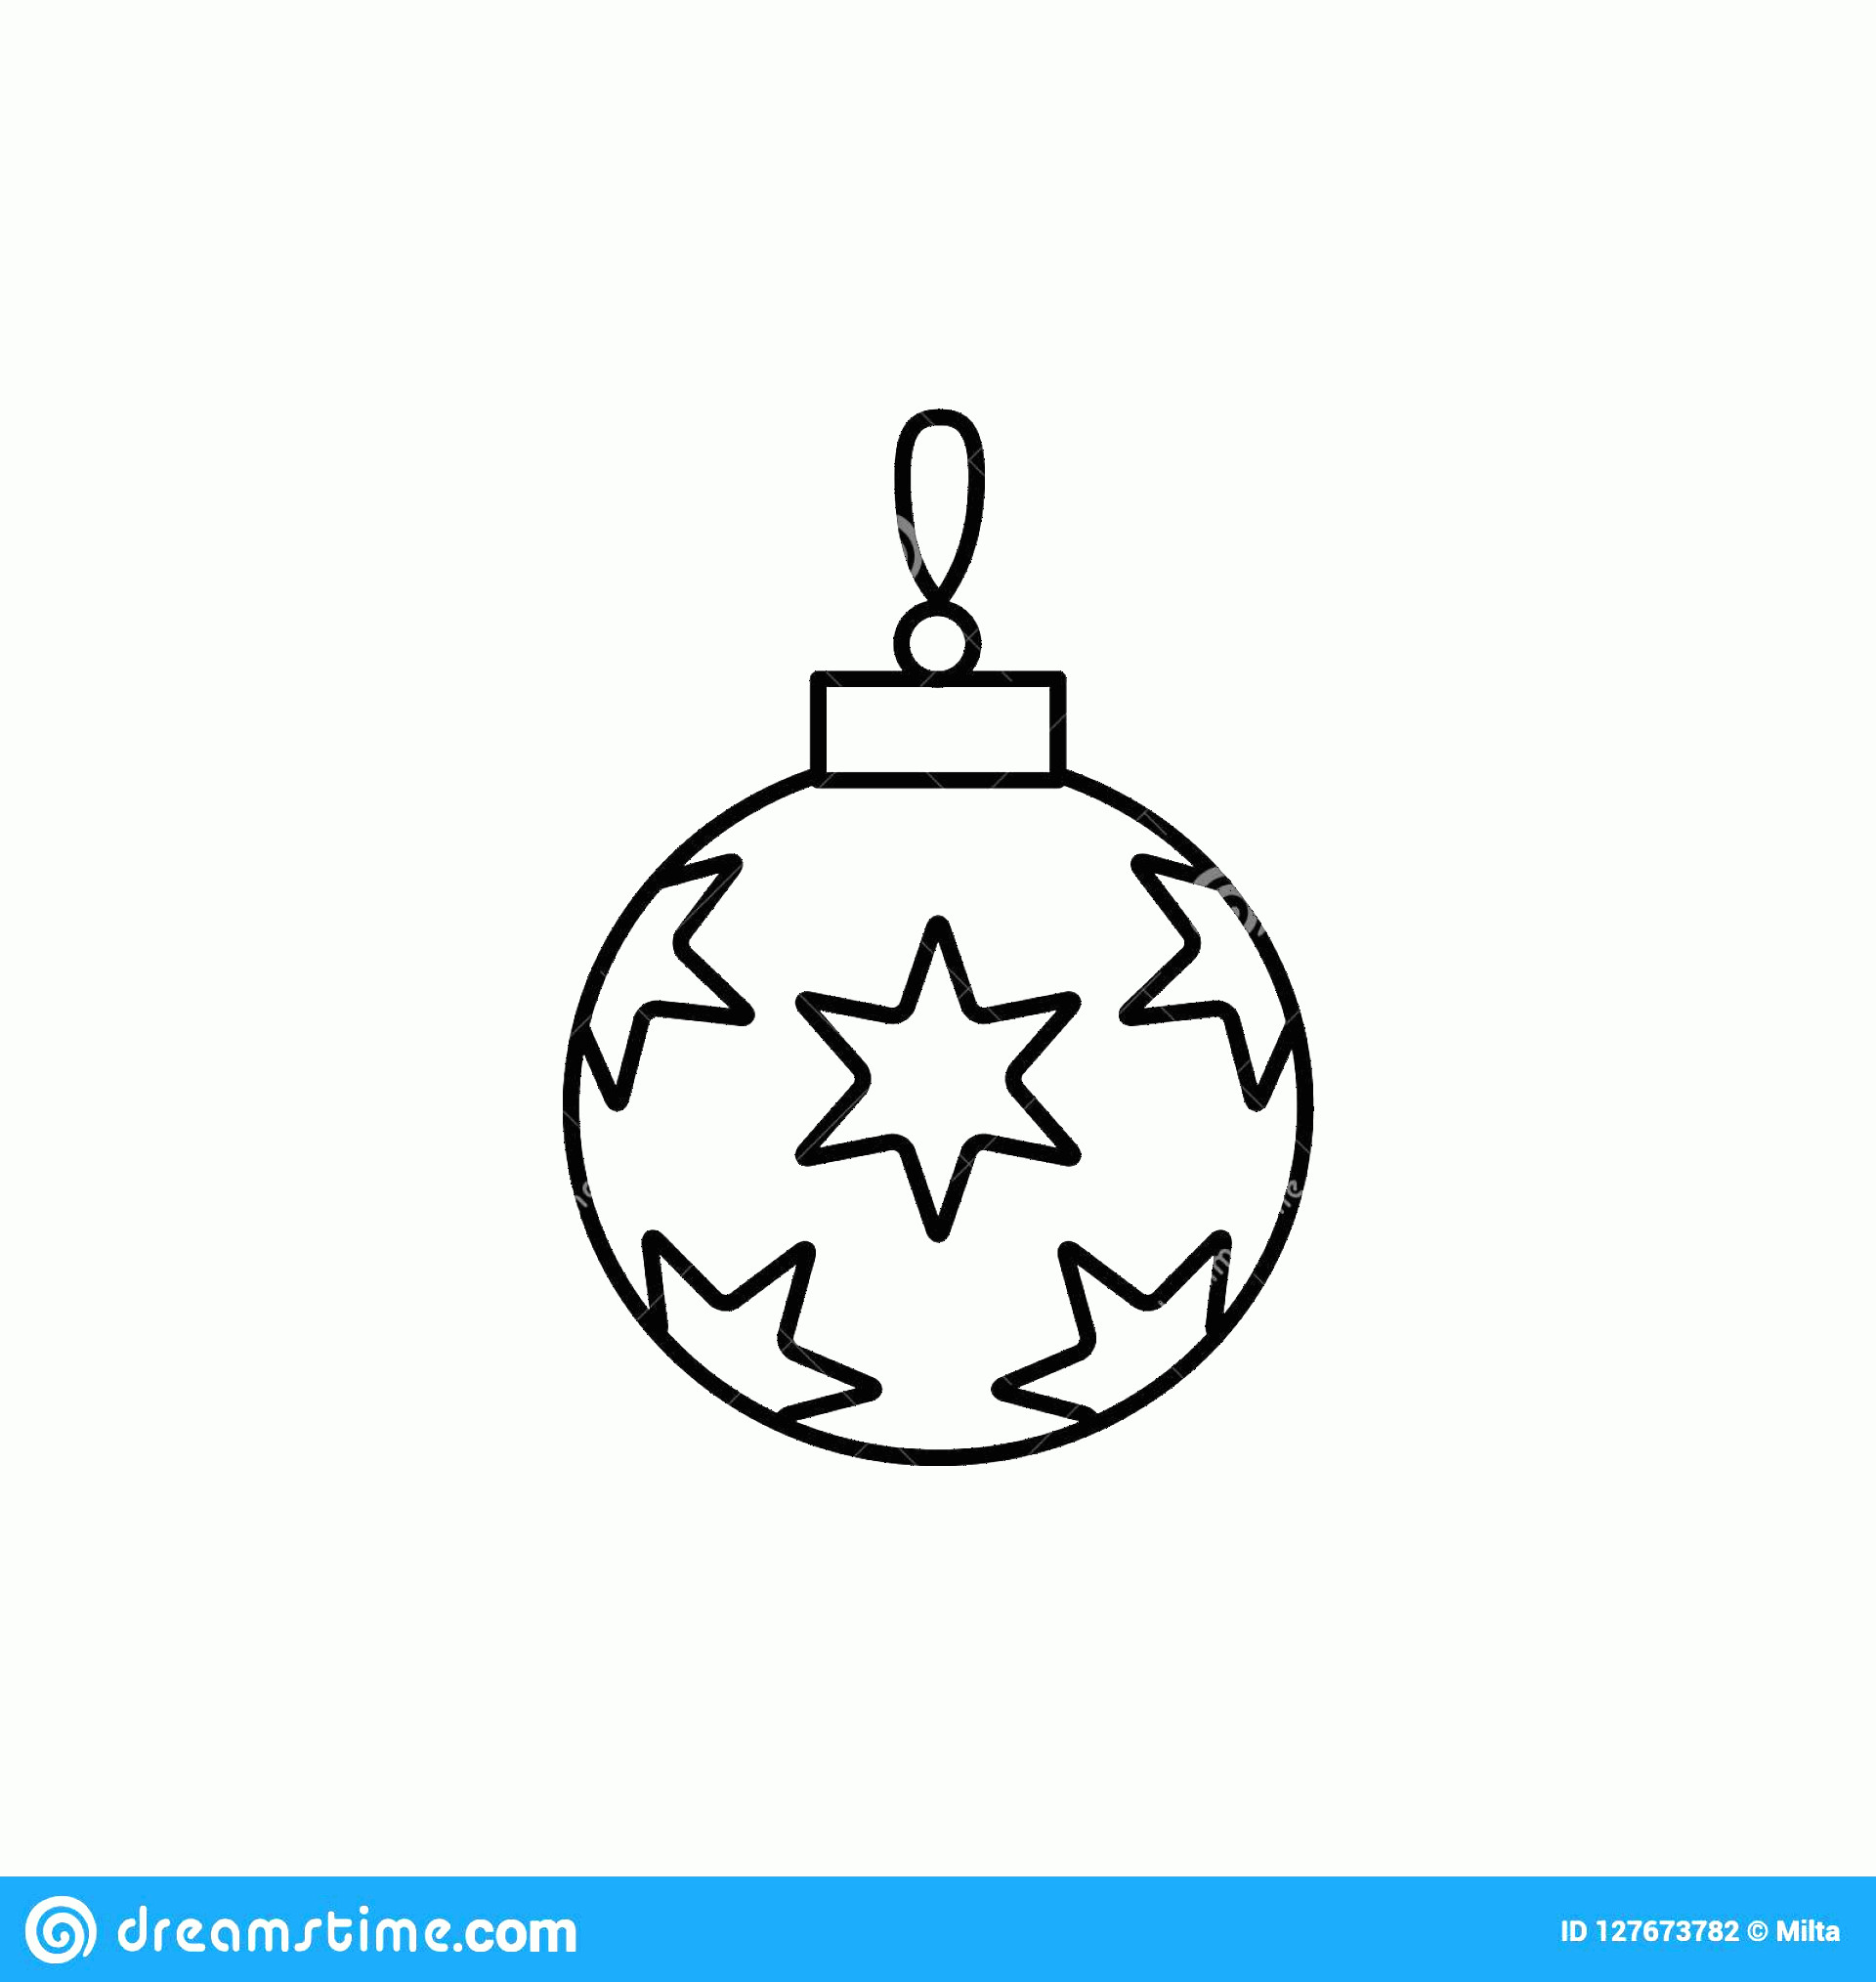 Black And White Christmas Ornament Vector Art: Black White Vector Illustration Christmas Ornament Stars Line Icon Holiday Bauble Decorative Festive Round Ball Home Image